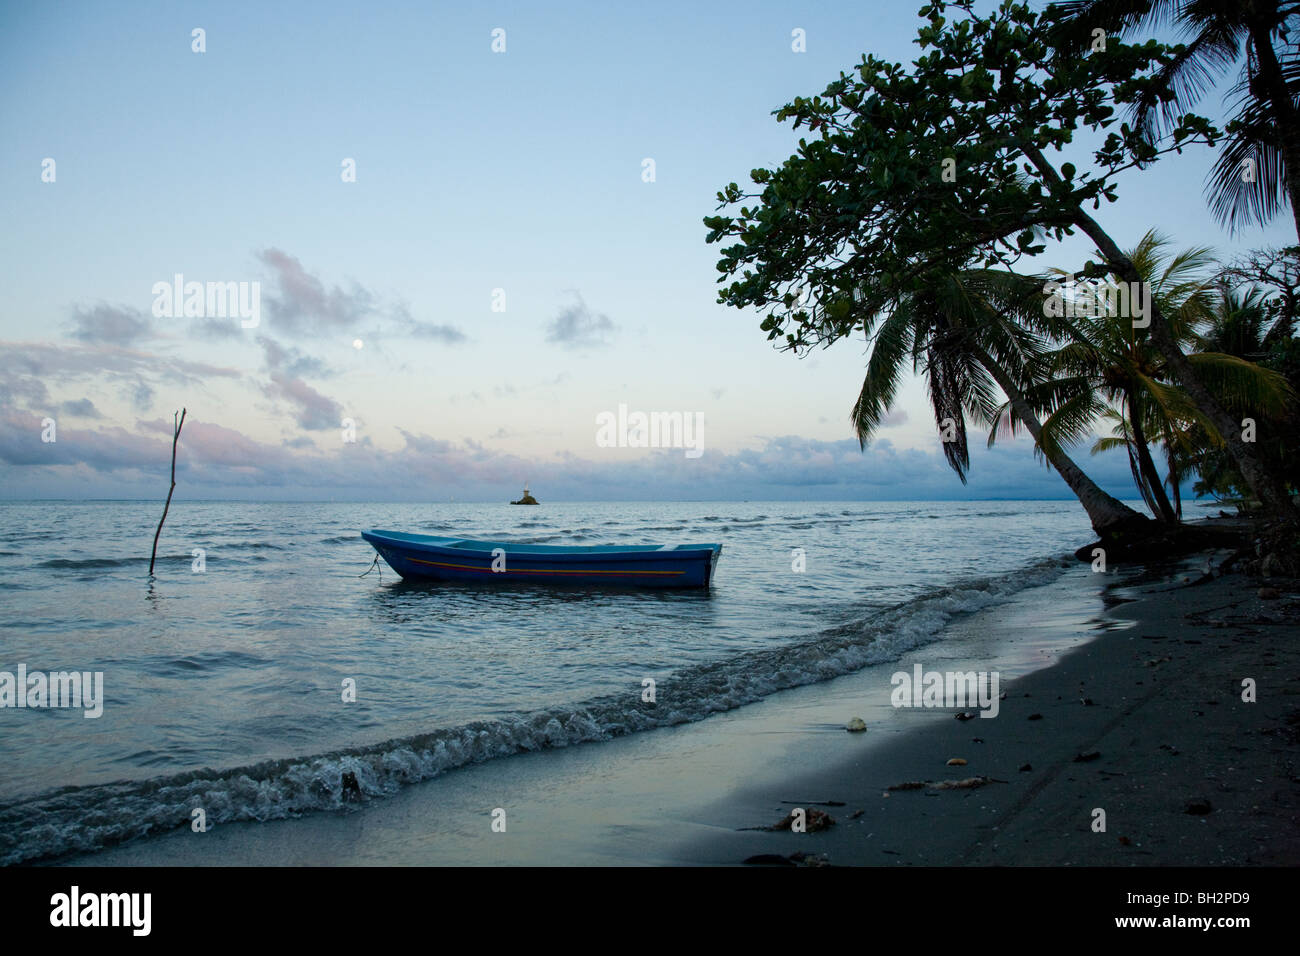 Sunset, Caribbean Sea, Livingston, Guatemala. - Stock Image